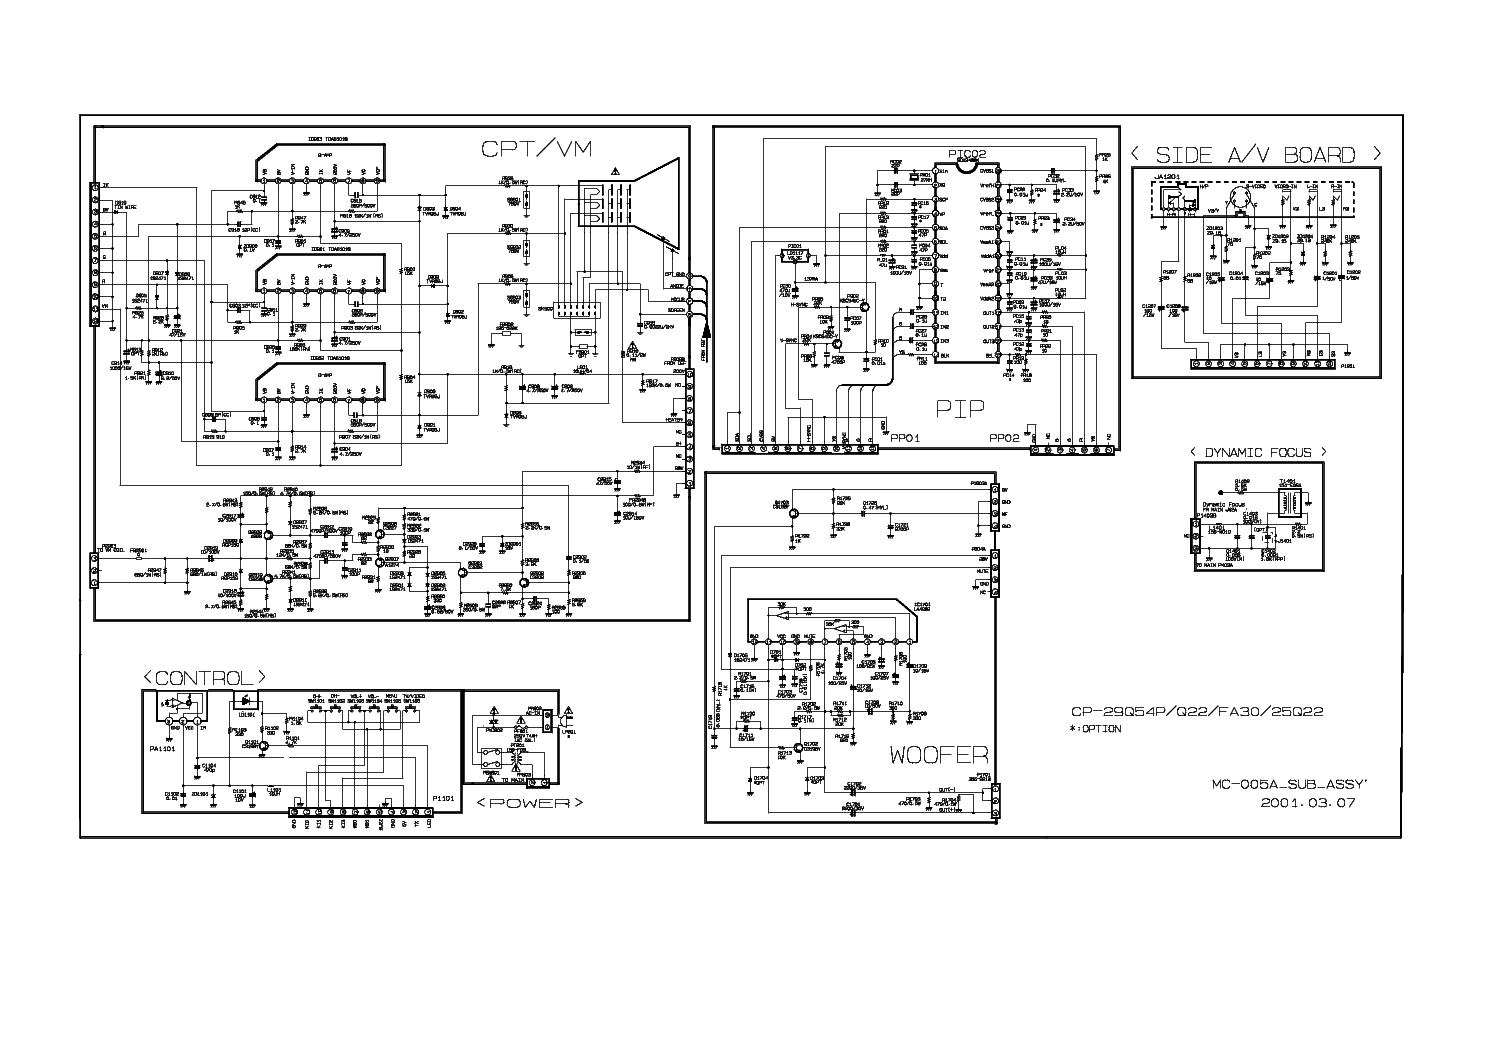 LG CP-25Q22 Service Manual download, schematics, eeprom